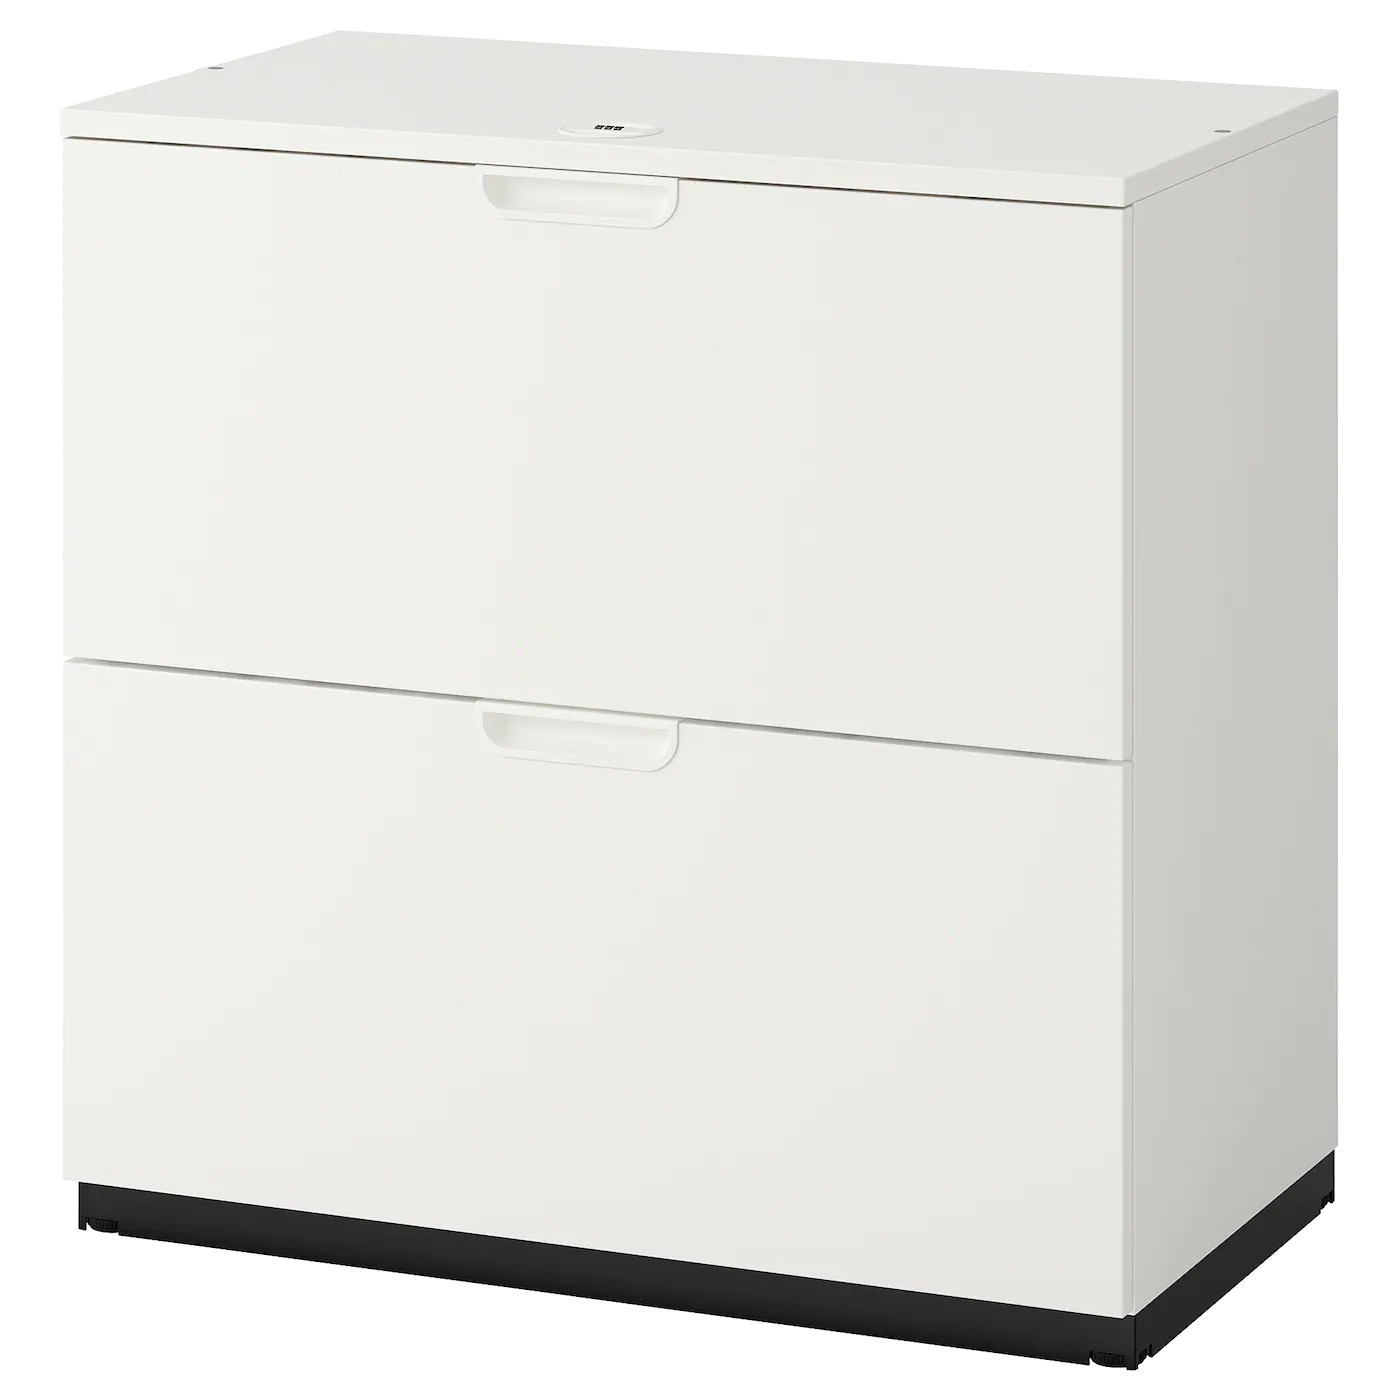 Ikea Galant Bureau Galant Drawer Unit Drop File Storage White